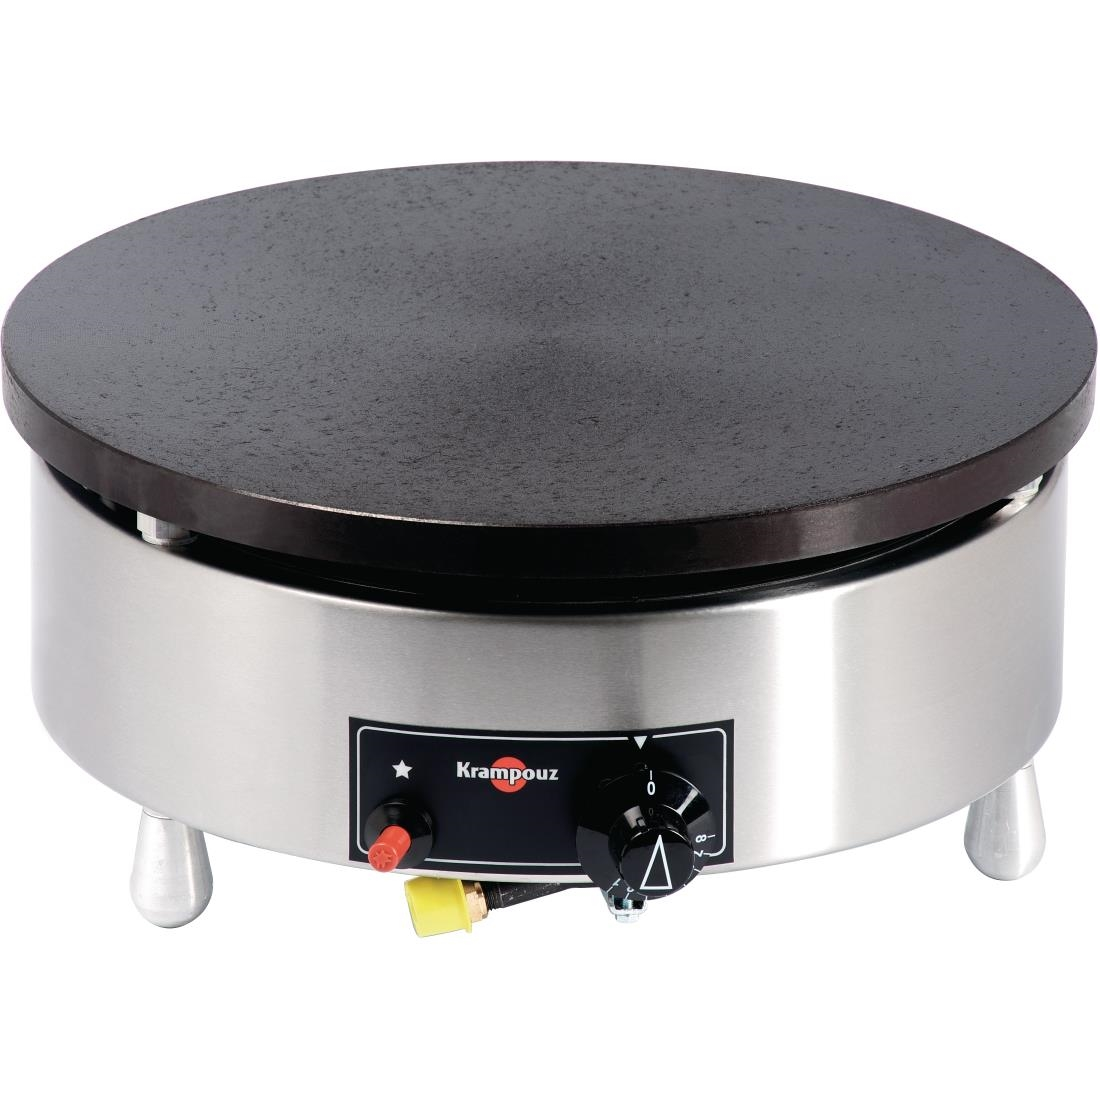 Krampouz Gas Luxury Crepe Maker CGBIC4